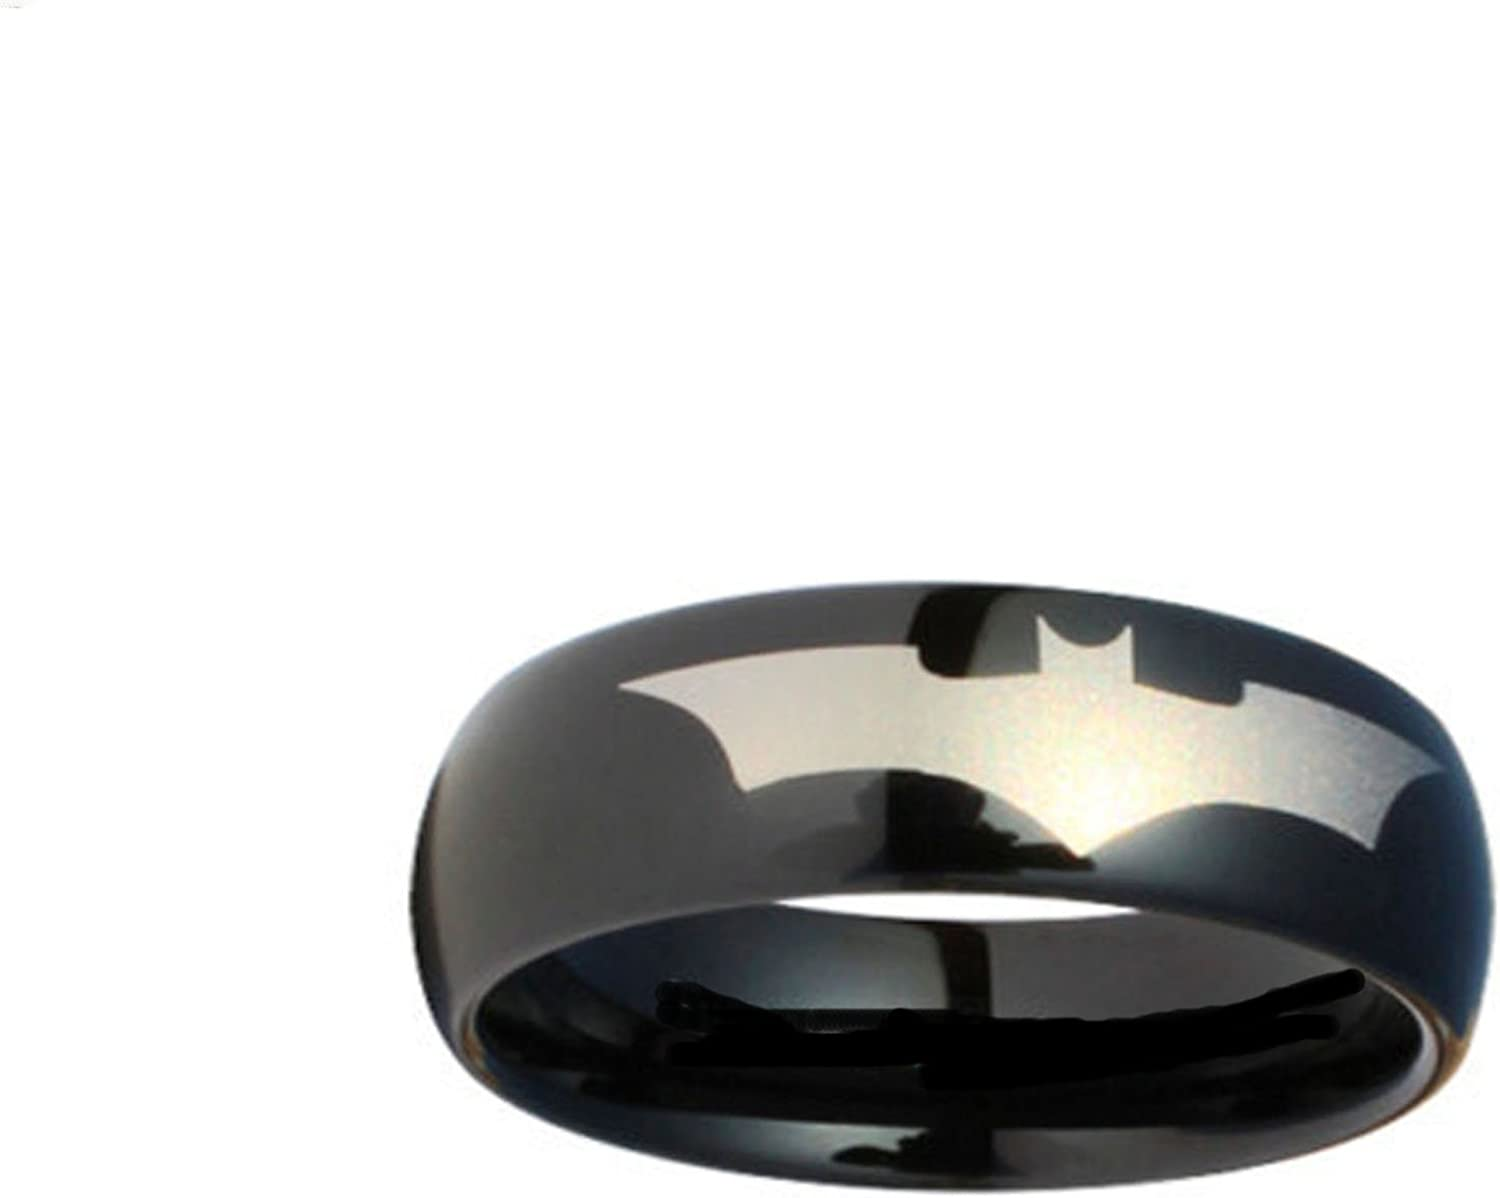 Blue Palm Jewelry Batman Print on a Black Stainless Steel DC Width Band Ring R380 Size 5-13